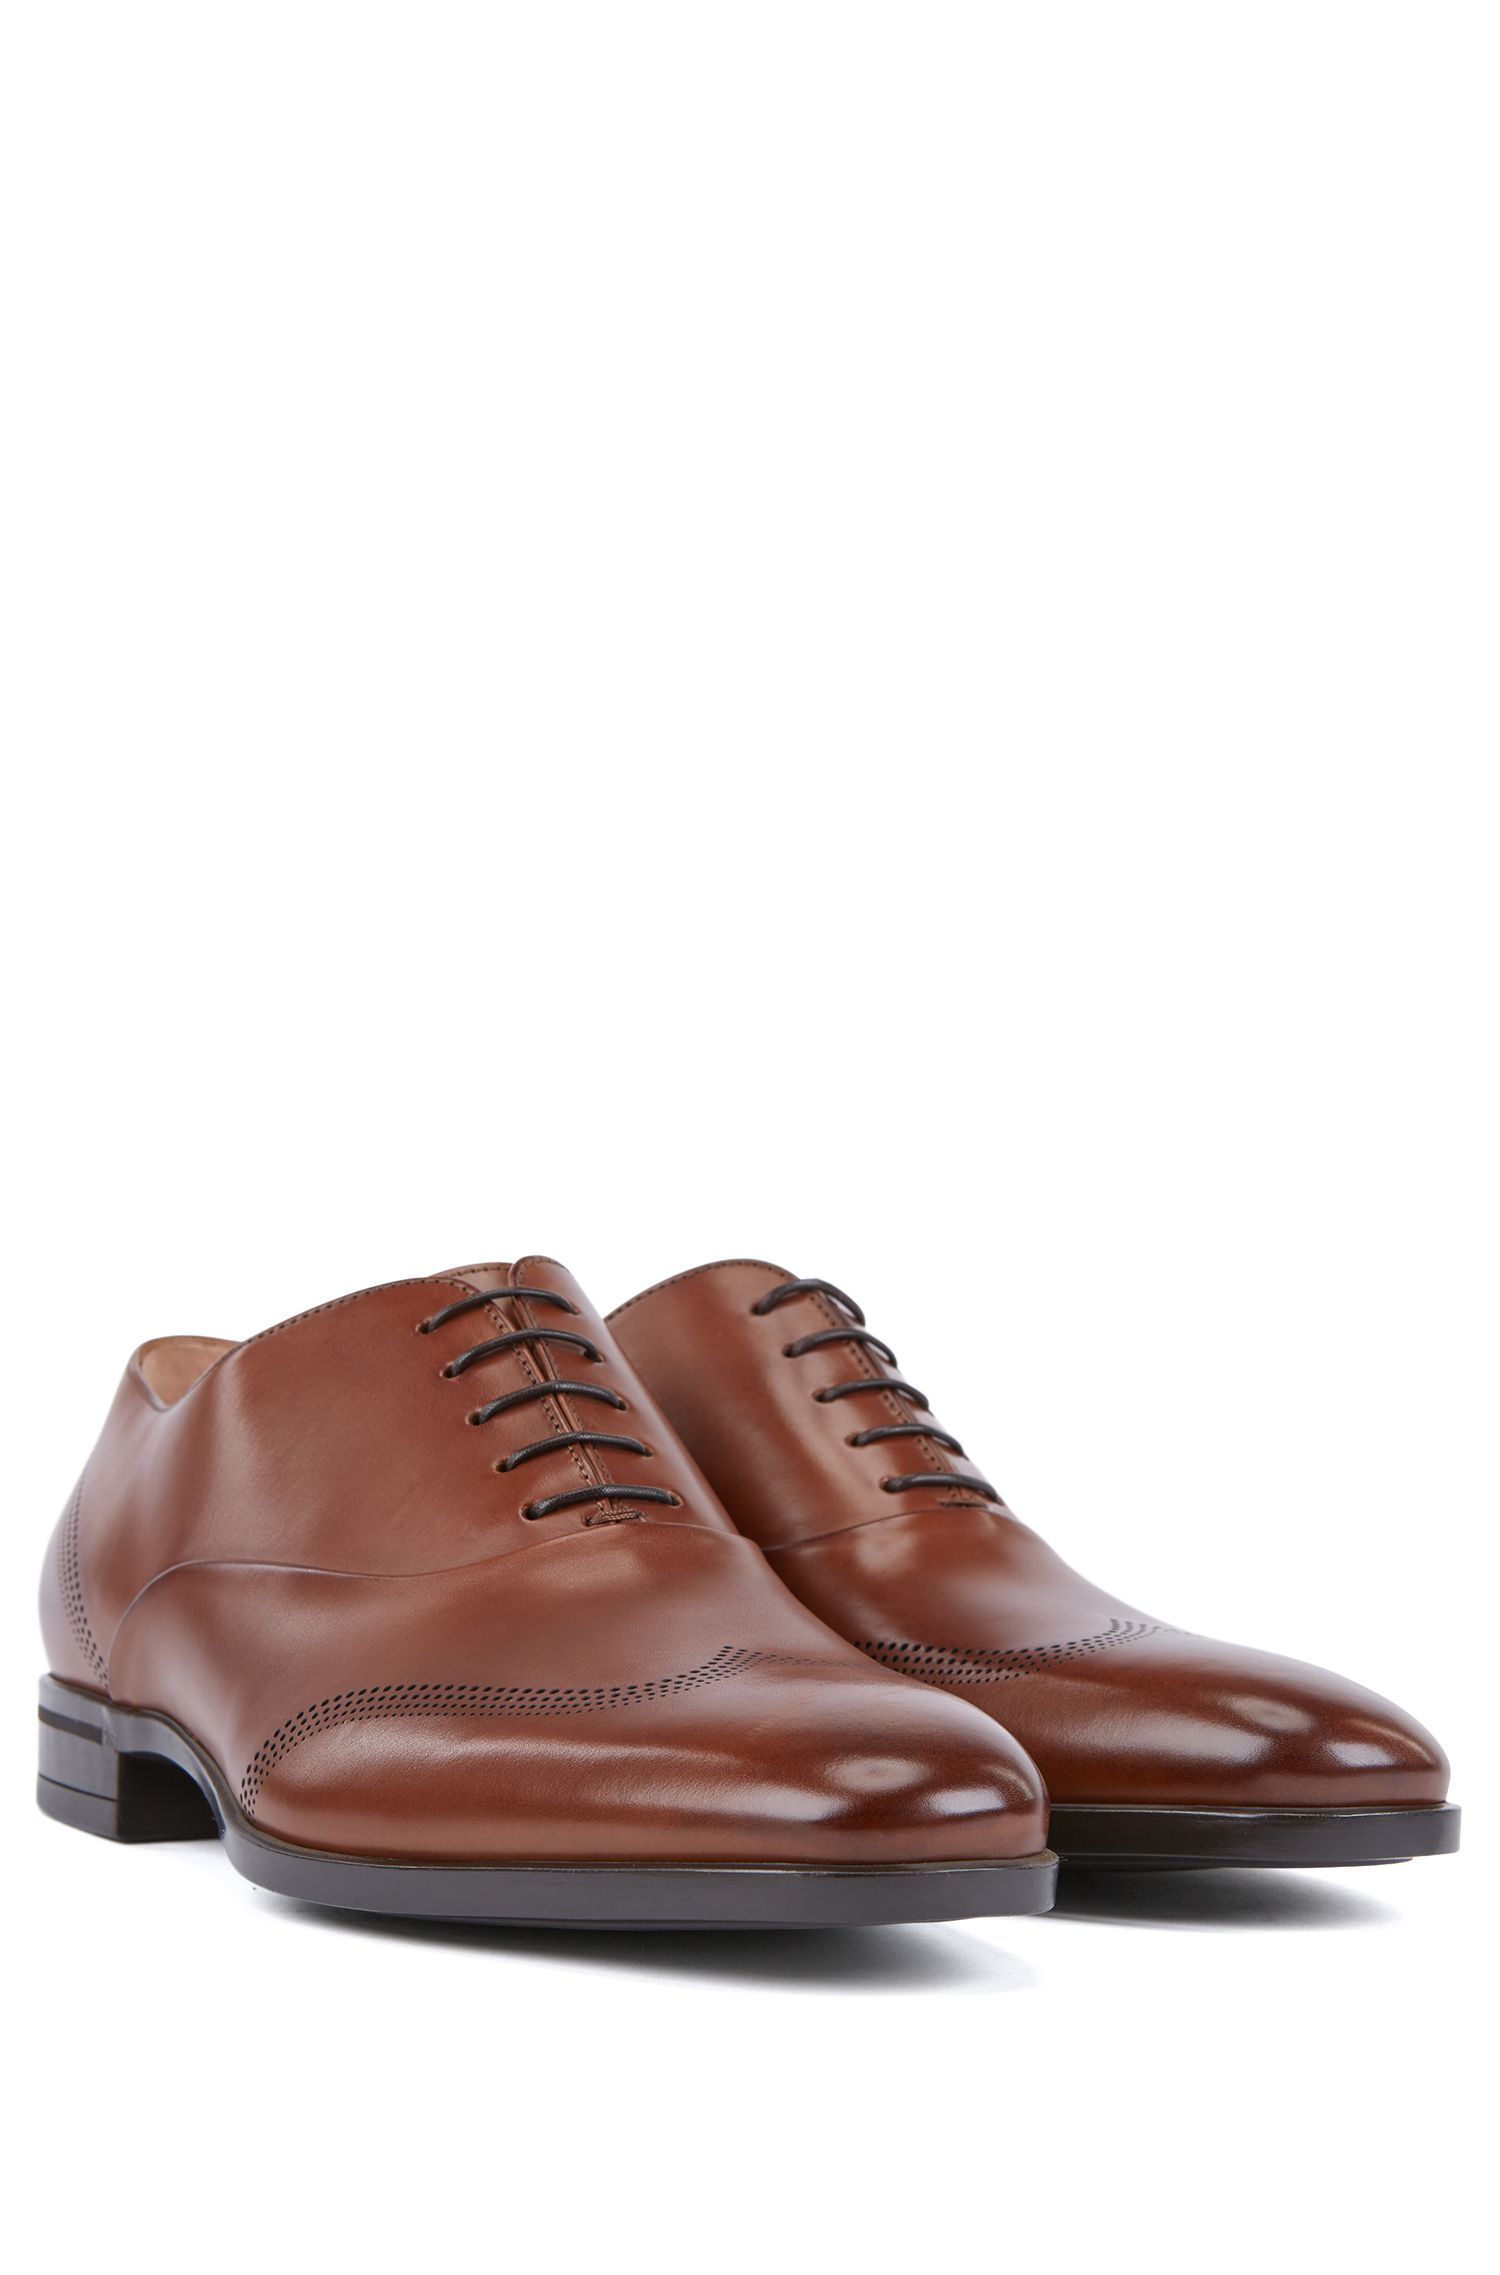 Hugo Boss - Oxford shoes in calf leather with laser-cut detailing - 2